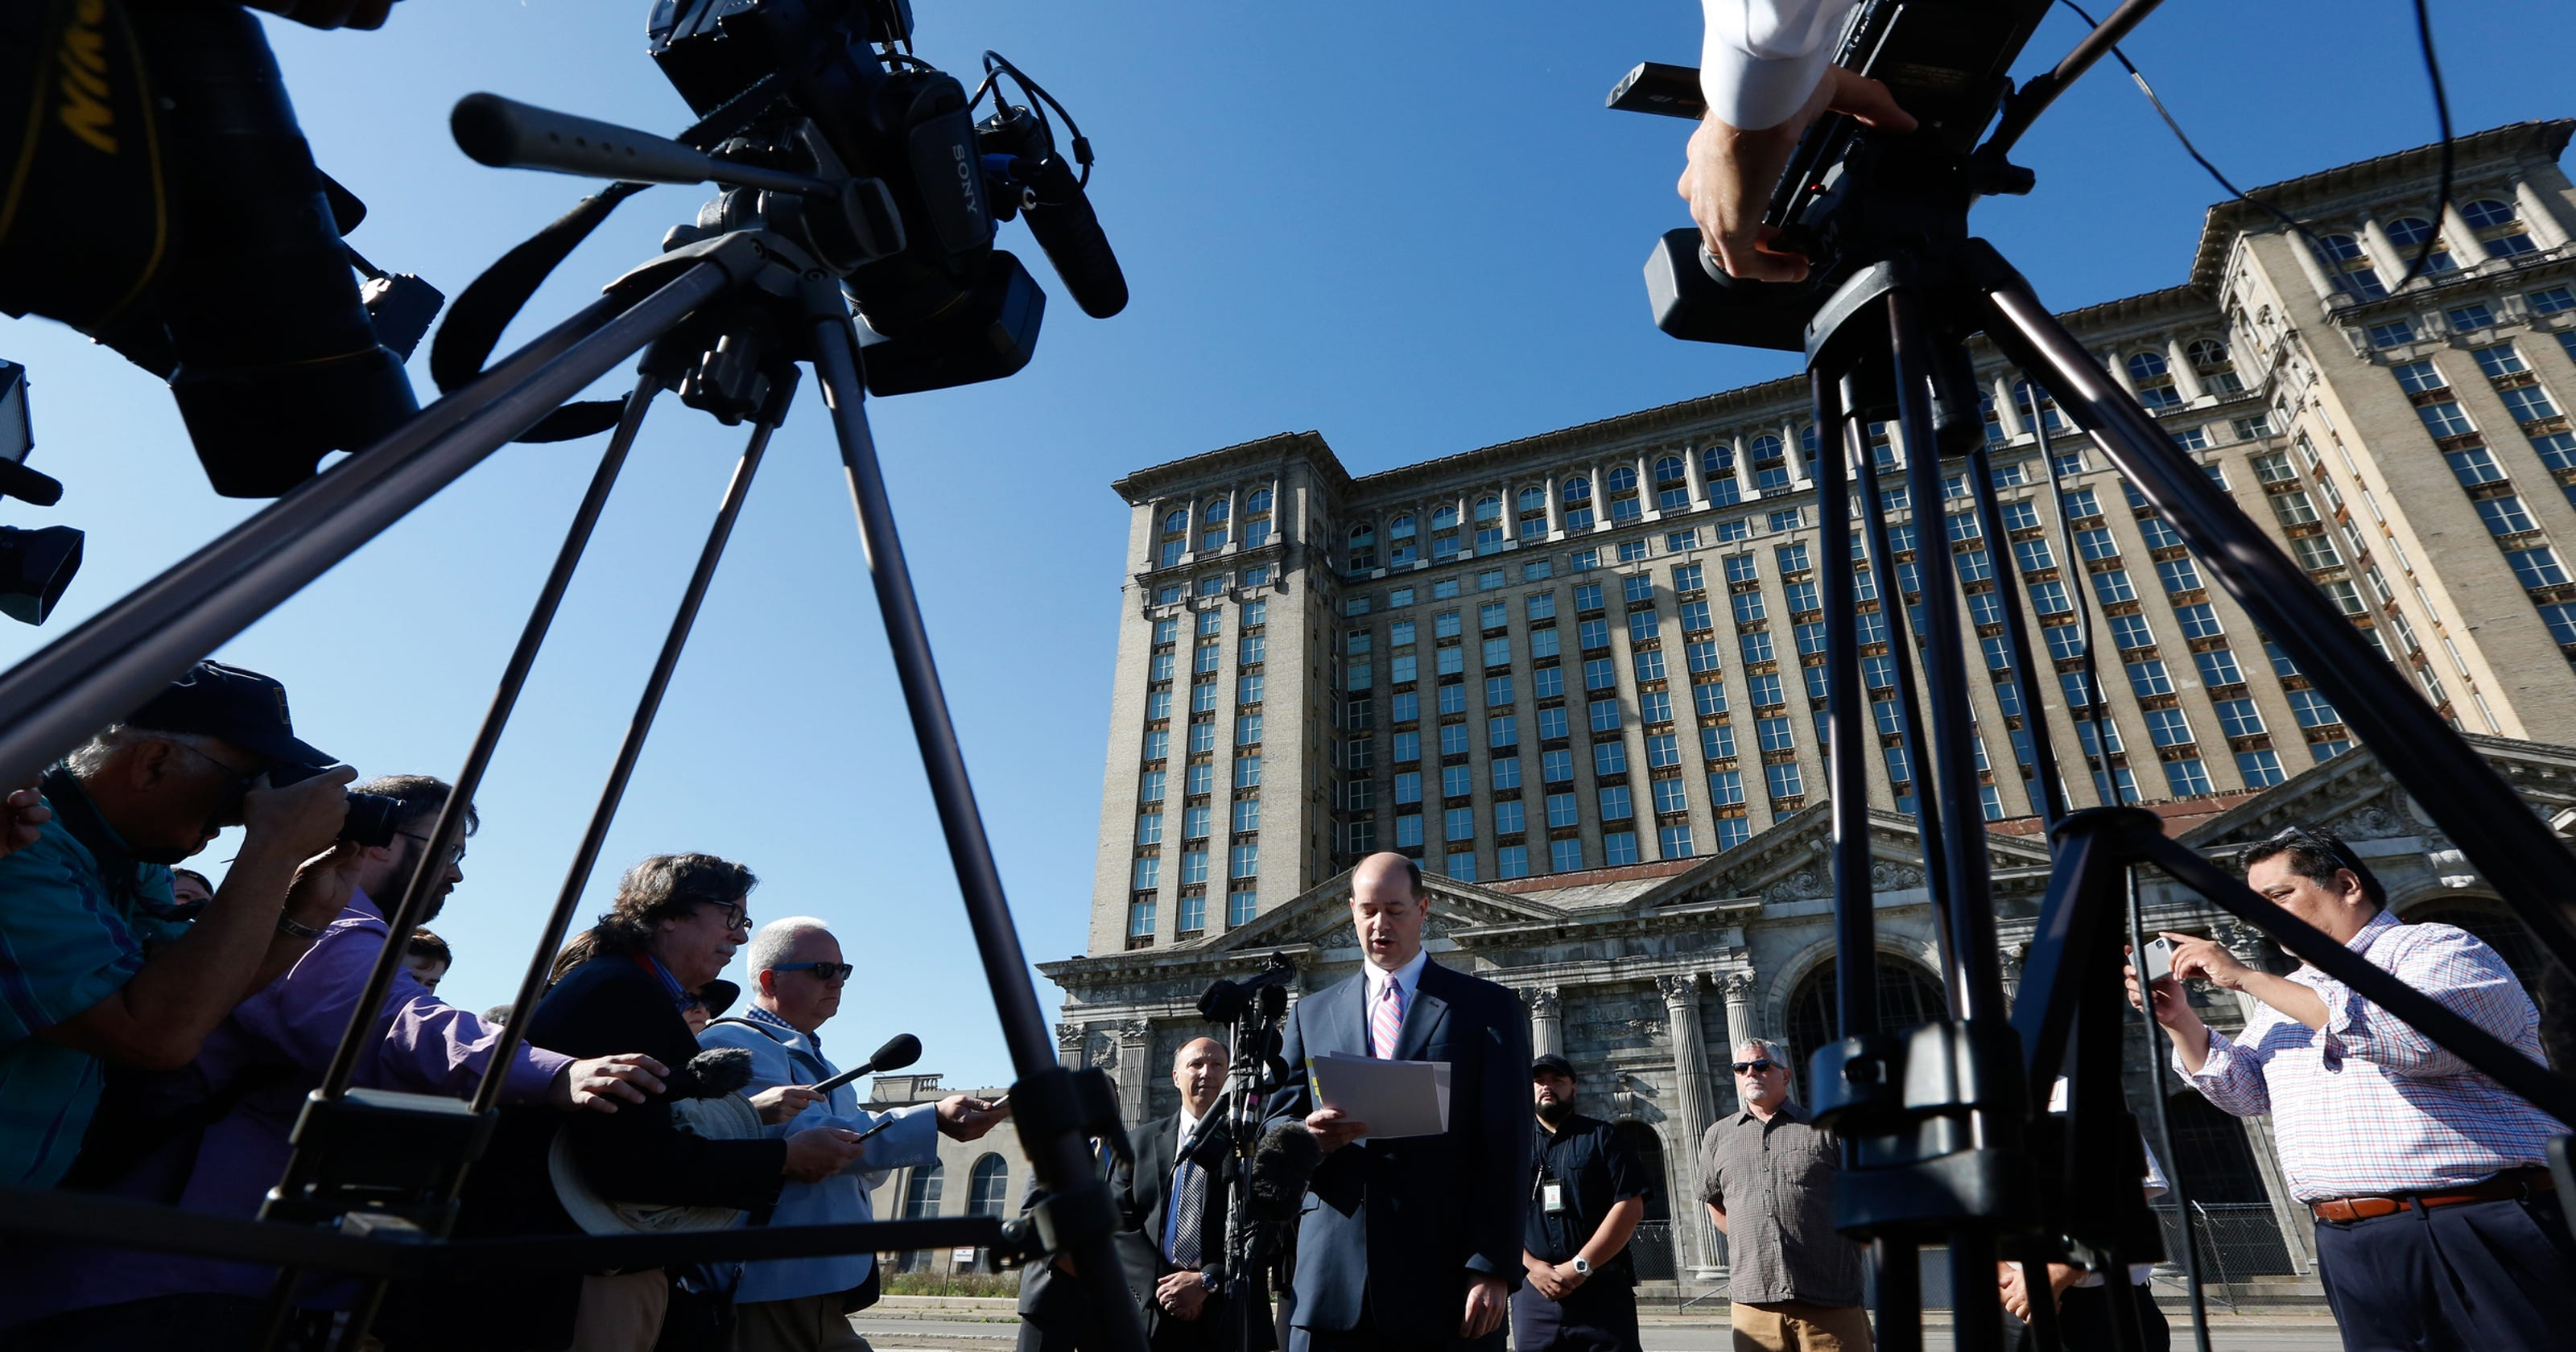 What\'s next, now that Ford owns Michigan Central Station?